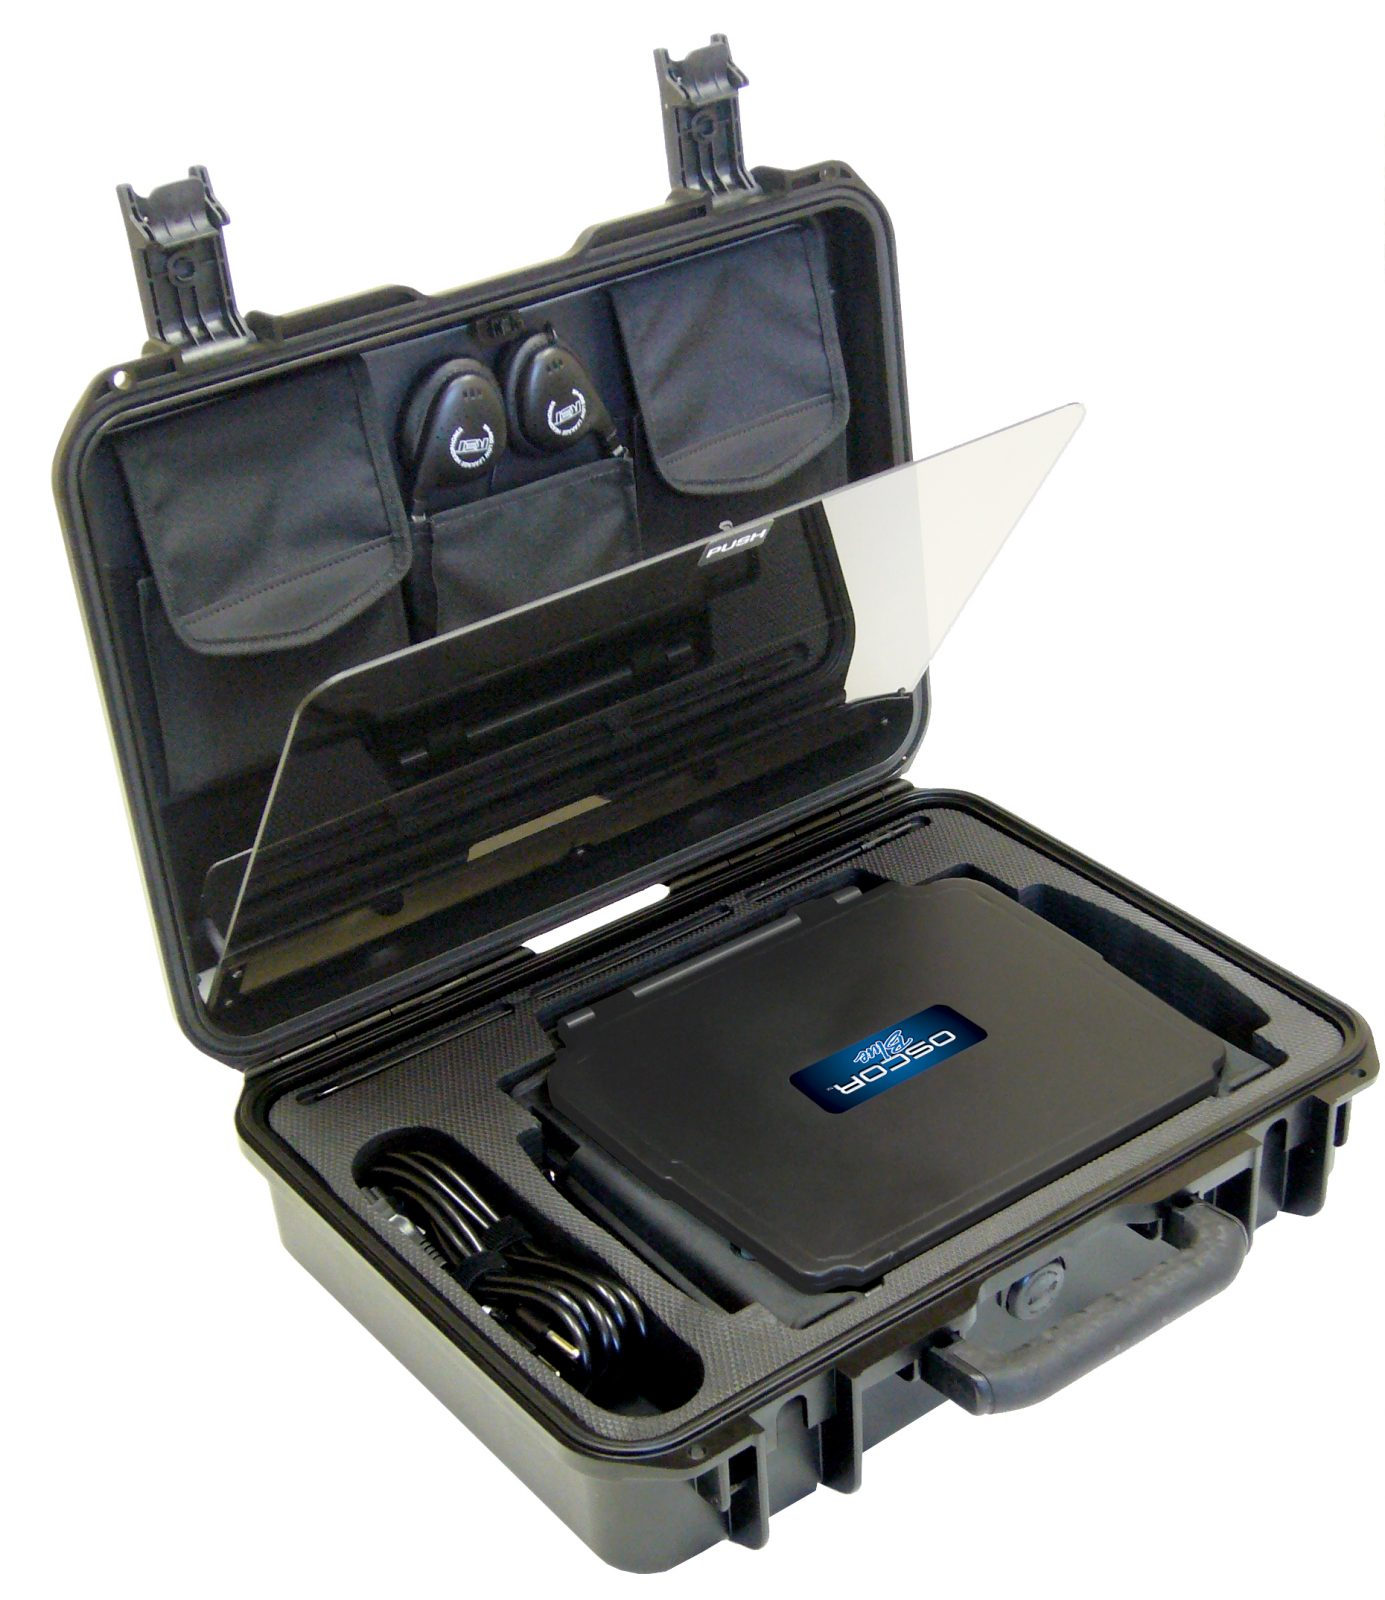 OSCOR Blue Spectrum Analyzer and Case